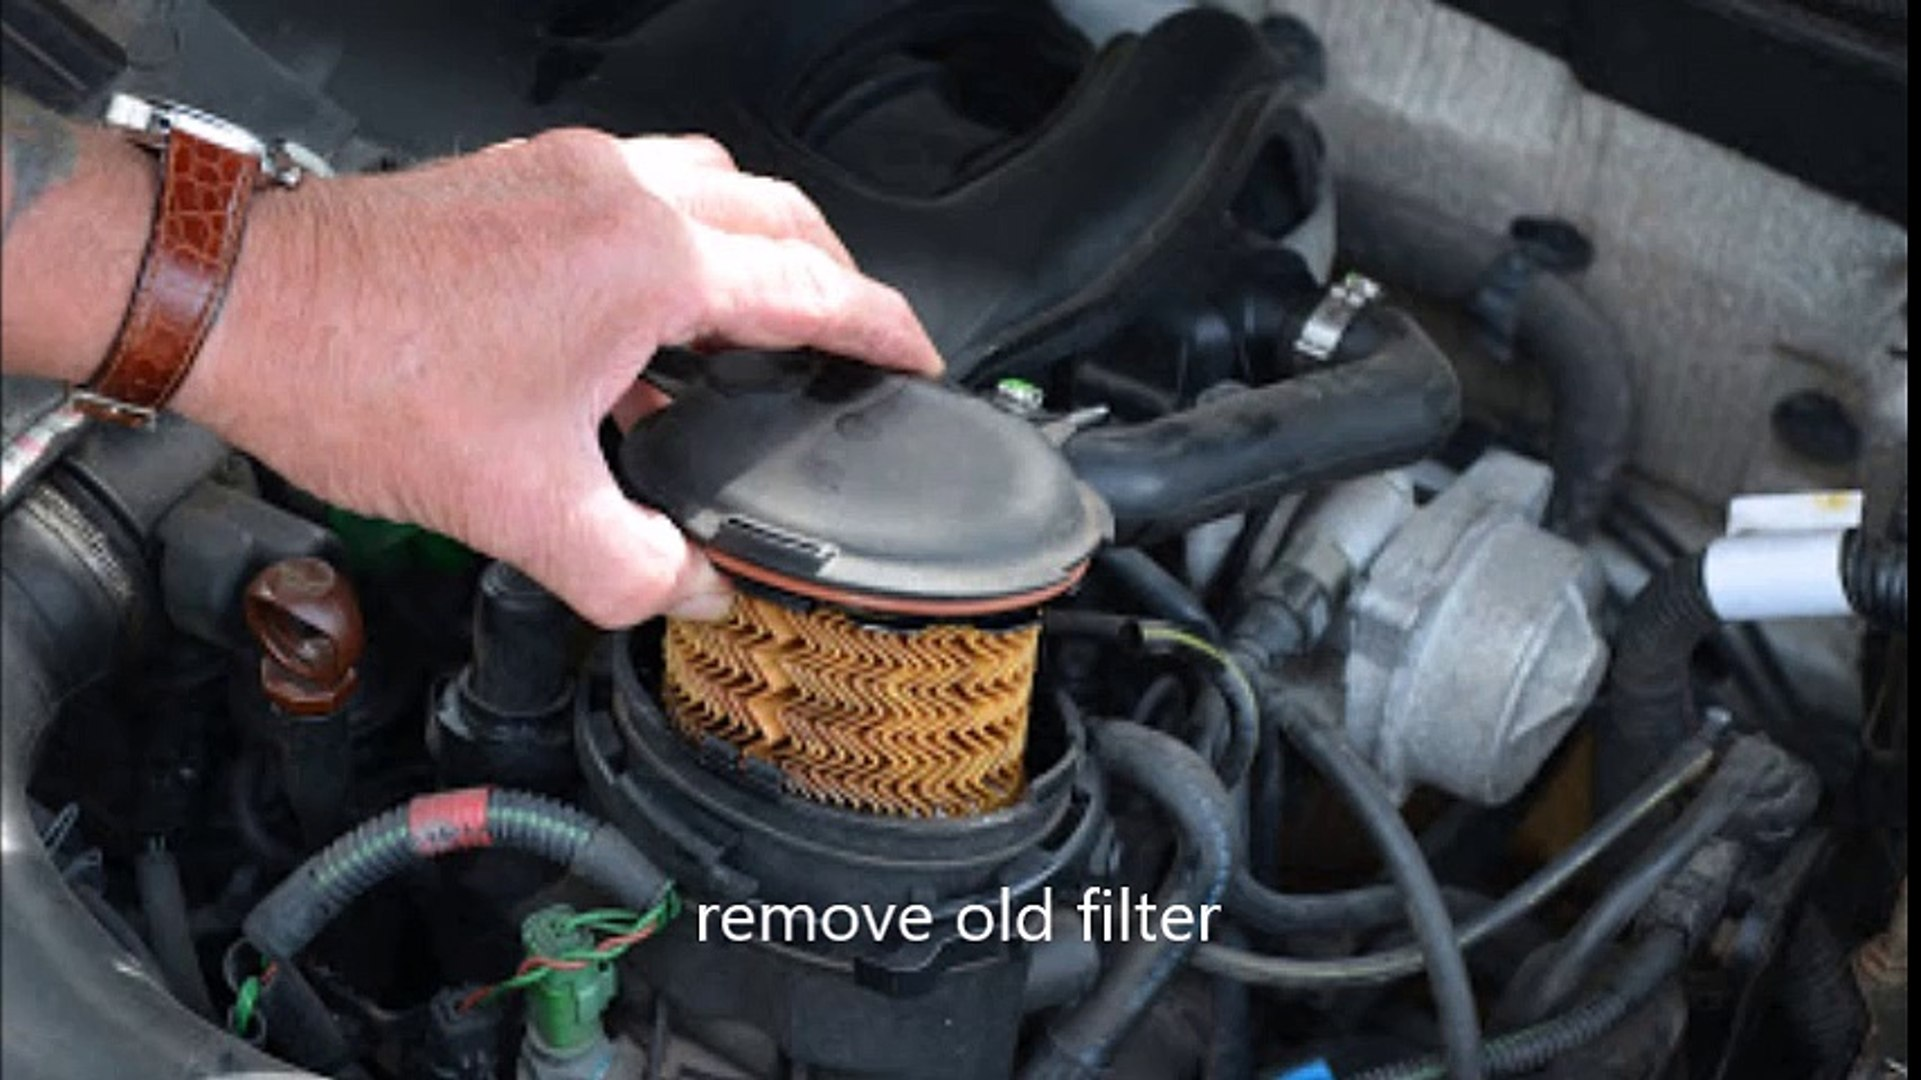 citroen berlingo fuel filter replacement and priming filter to start